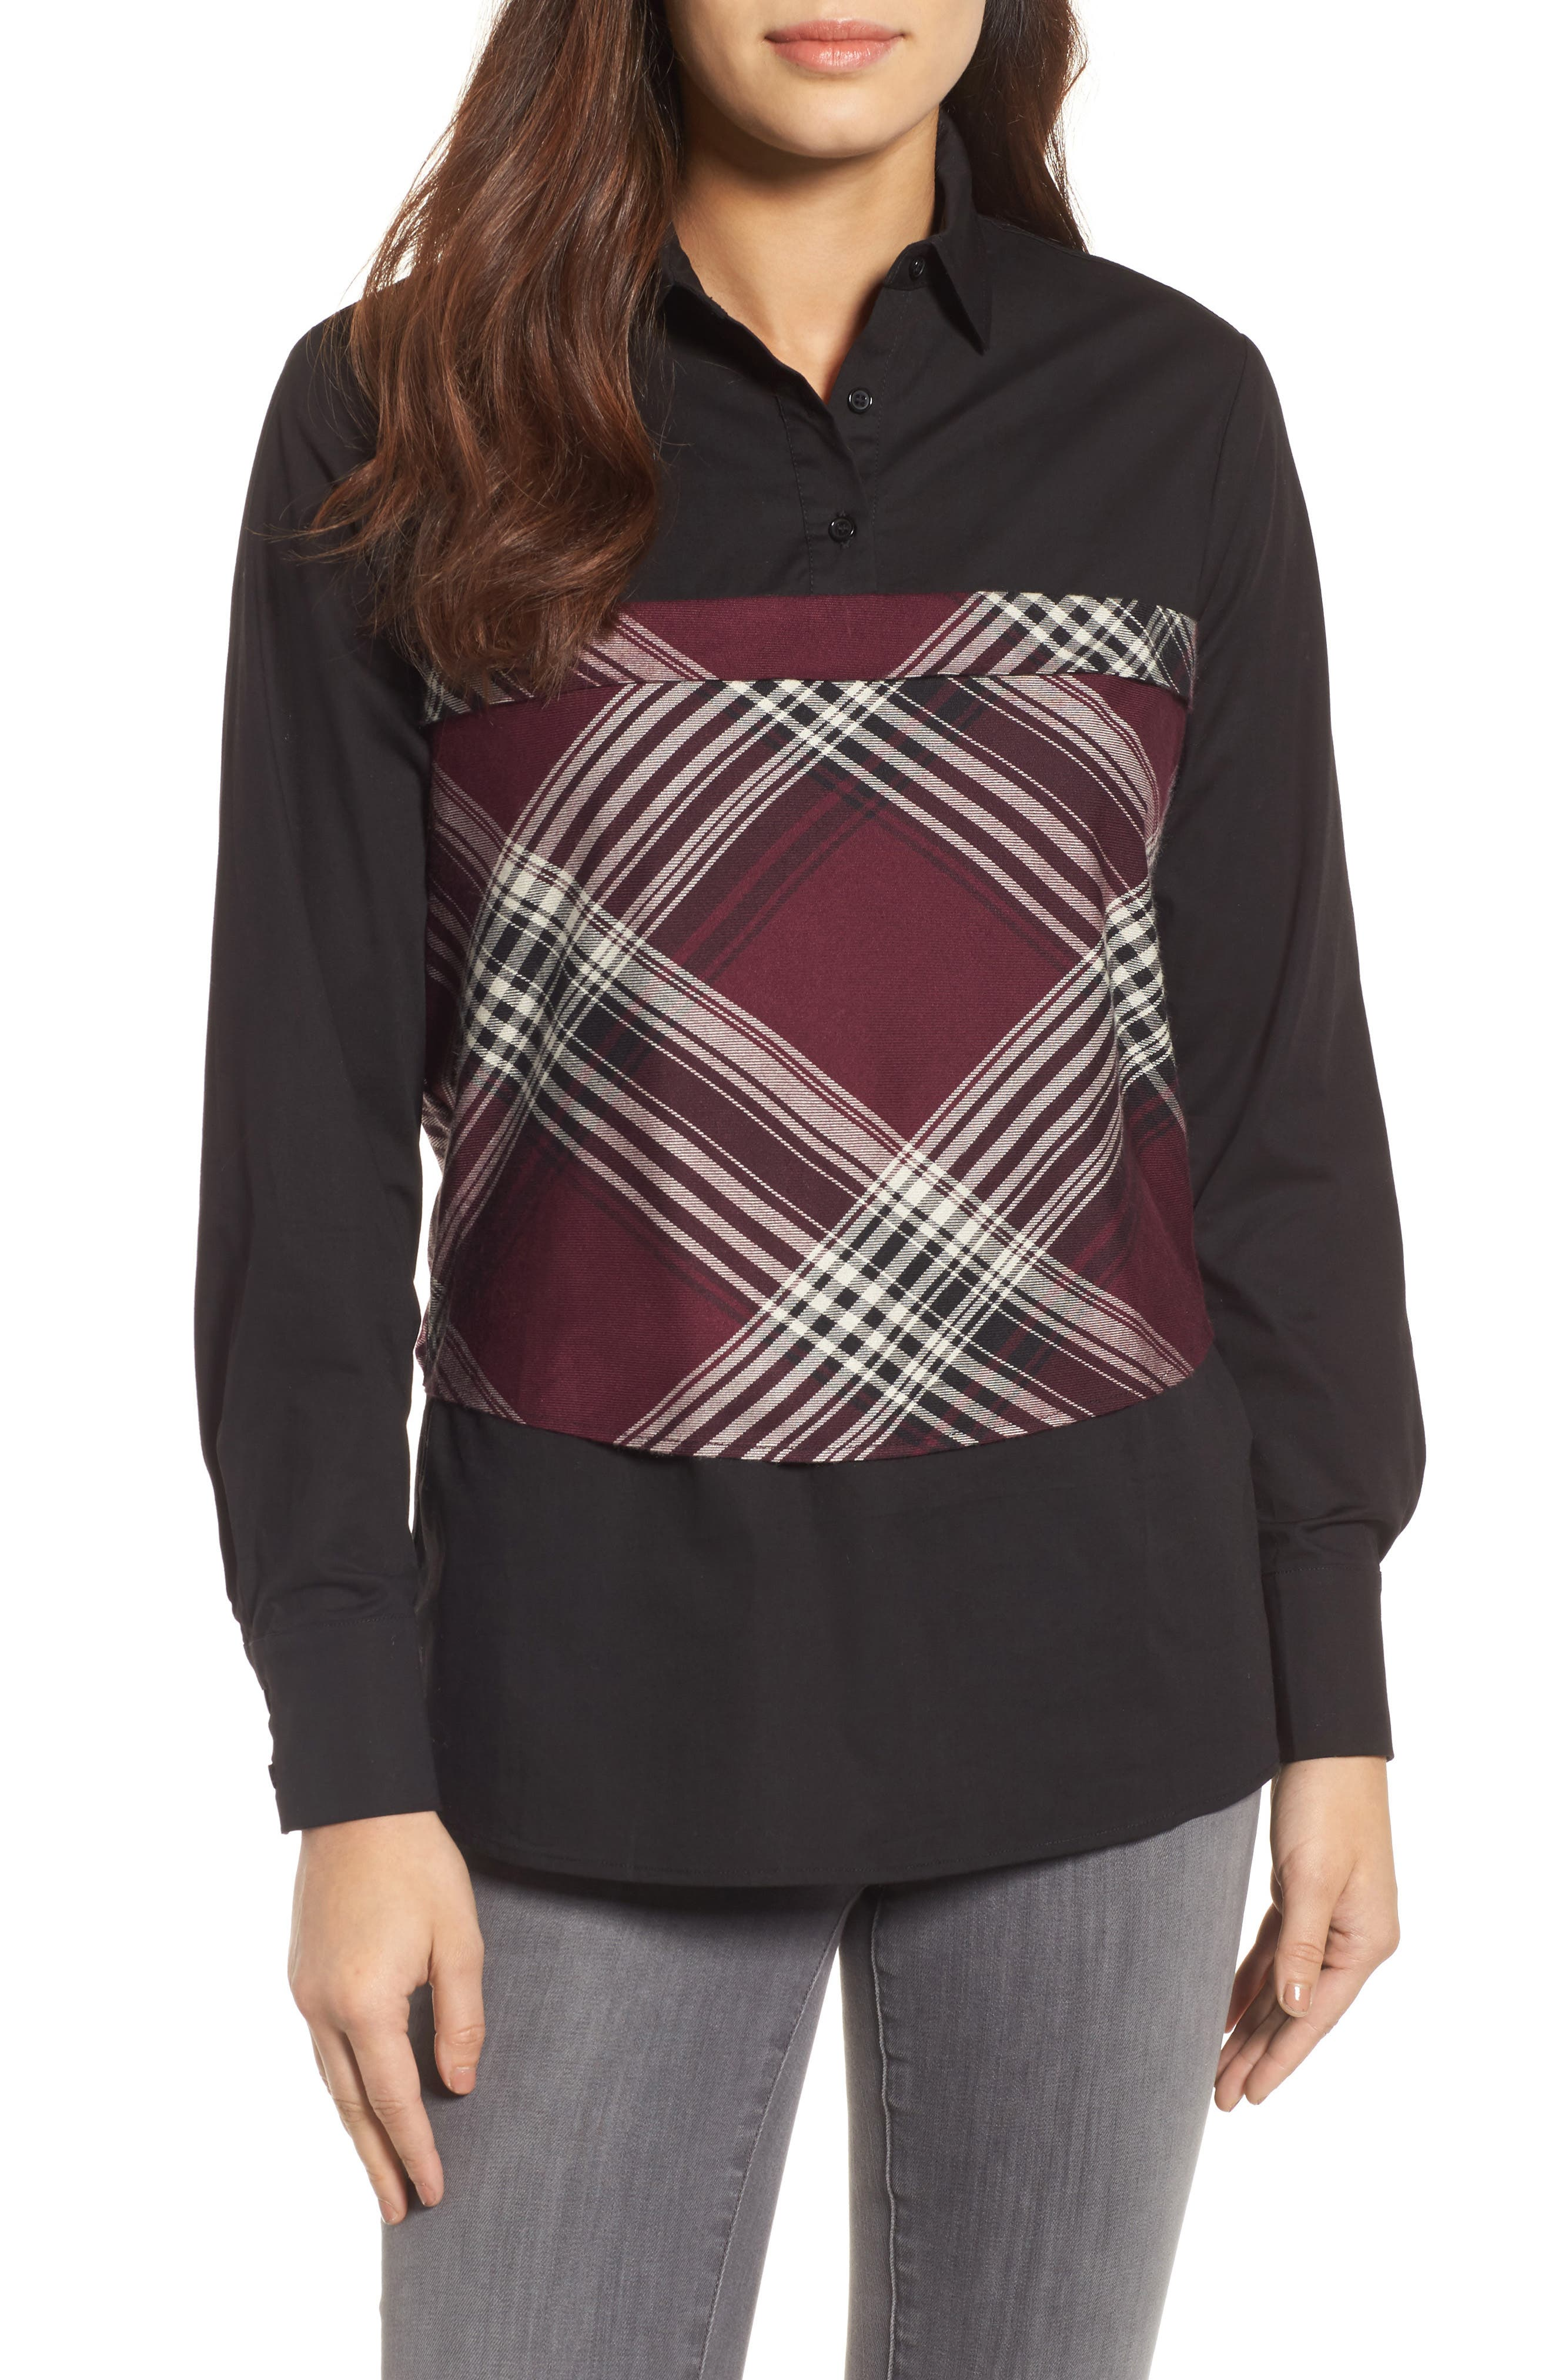 Plaid Corset Shirt,                         Main,                         color, Wine/ Black Plaid/ Black